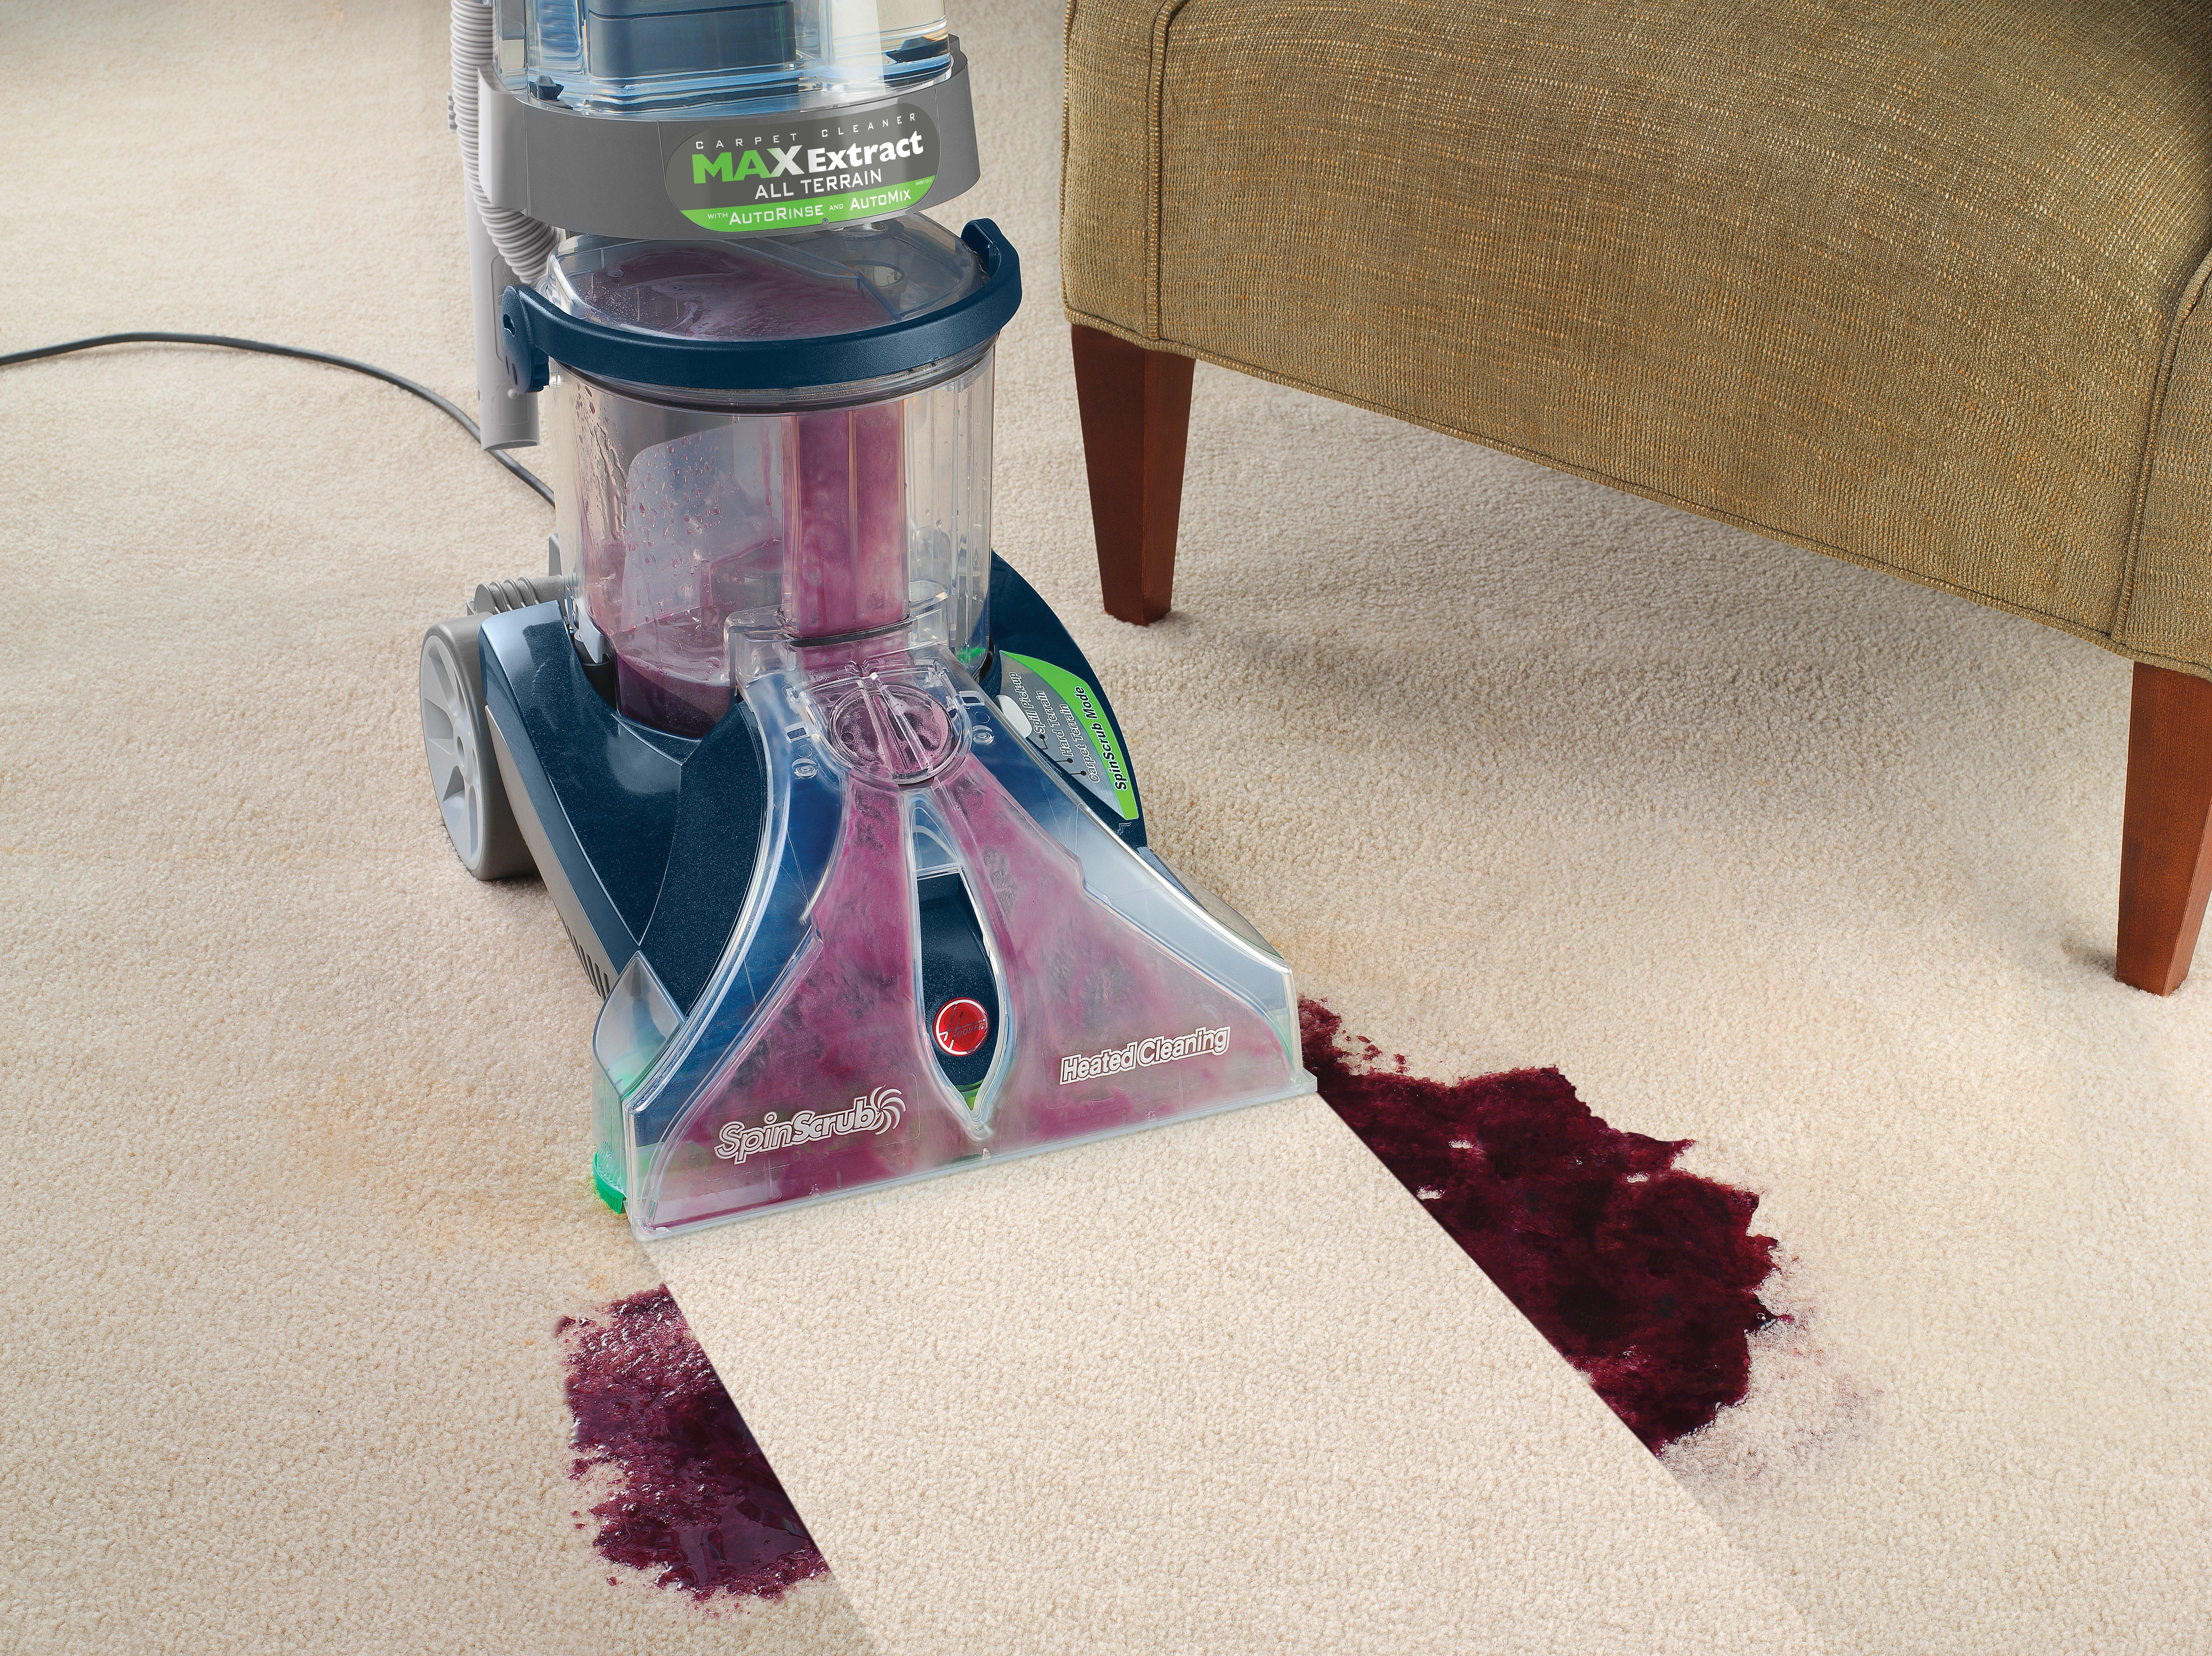 Max Extract Dual V WidePath Carpet Washer4